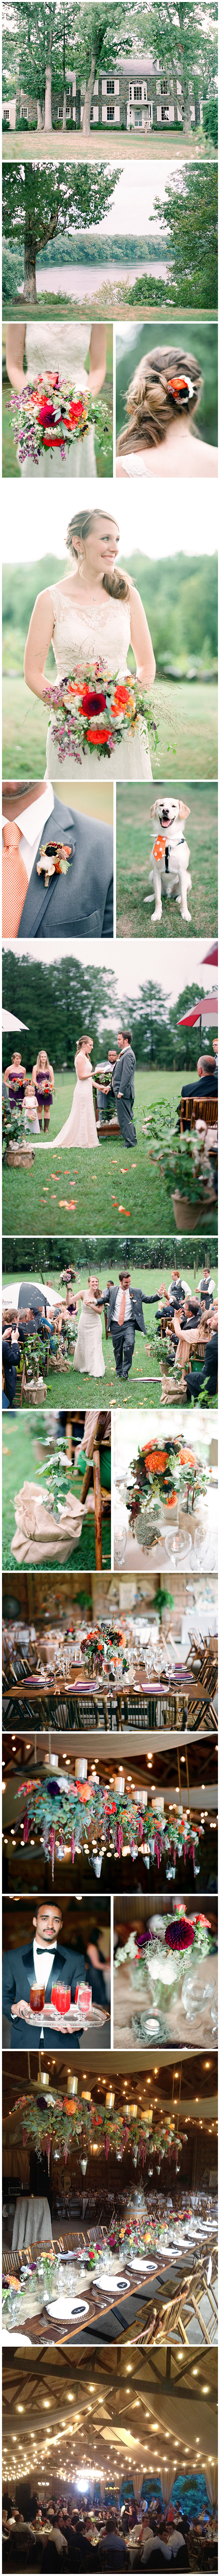 With a setting reminiscent of a secret garden,   this outdoor affair was wispy and soft in style and full of deep, vibrant hues. To offset the majestic plum of the bridesmaids' dresses, a palette of orange, crimson and lavender graced the floral centerpieces and bouquets, while plum accents brightened farmhouse-style tables. Candles and twinkle lights accented bare barn beams and sweeping fabric draping brought an air of grace to the rustic space. Images by Julie Massie.